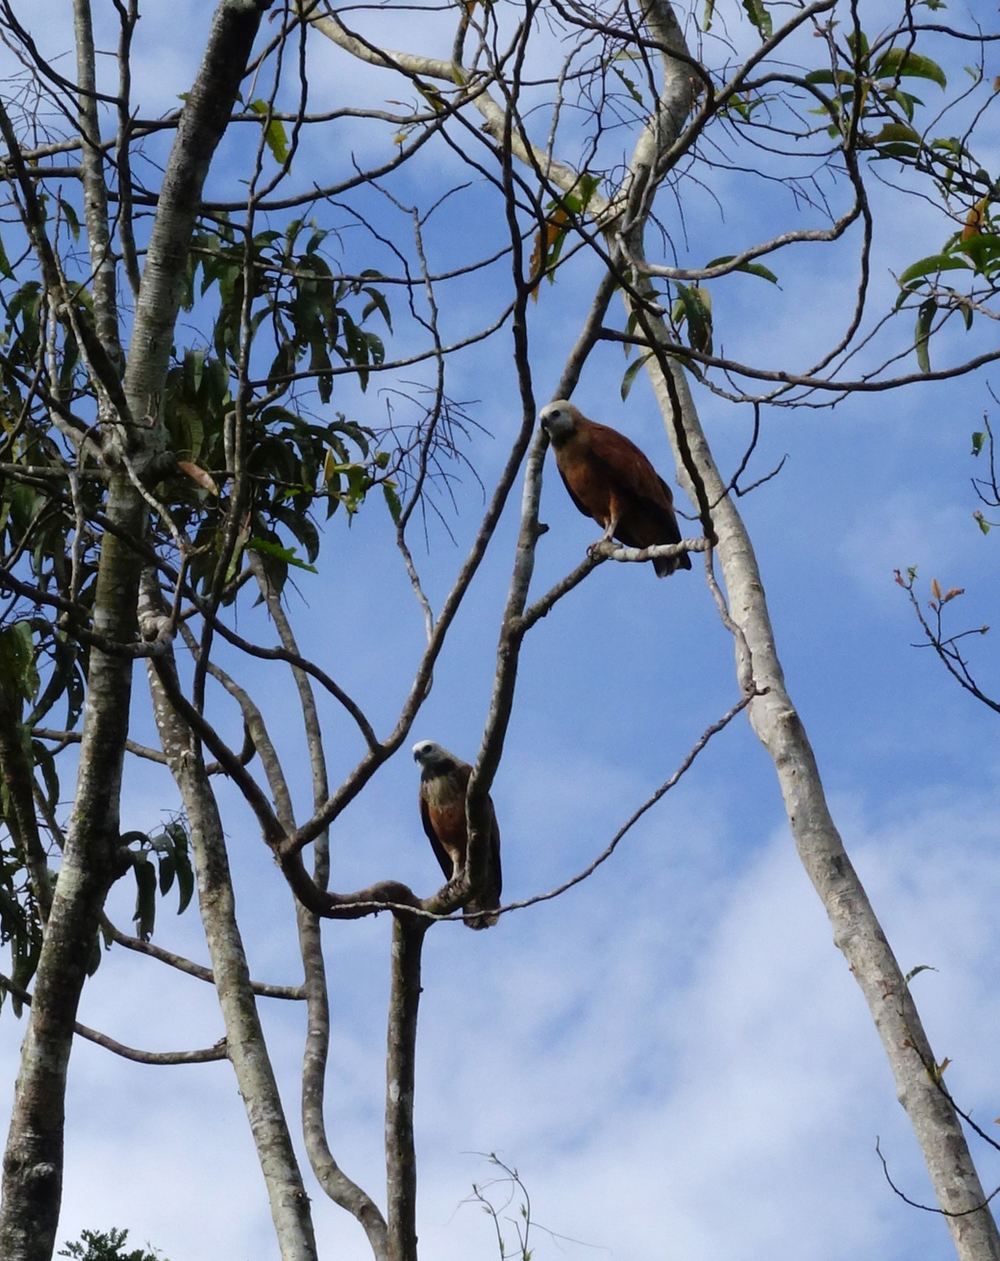 Two eagles. The species is referred to by locals as Mama Vieja.